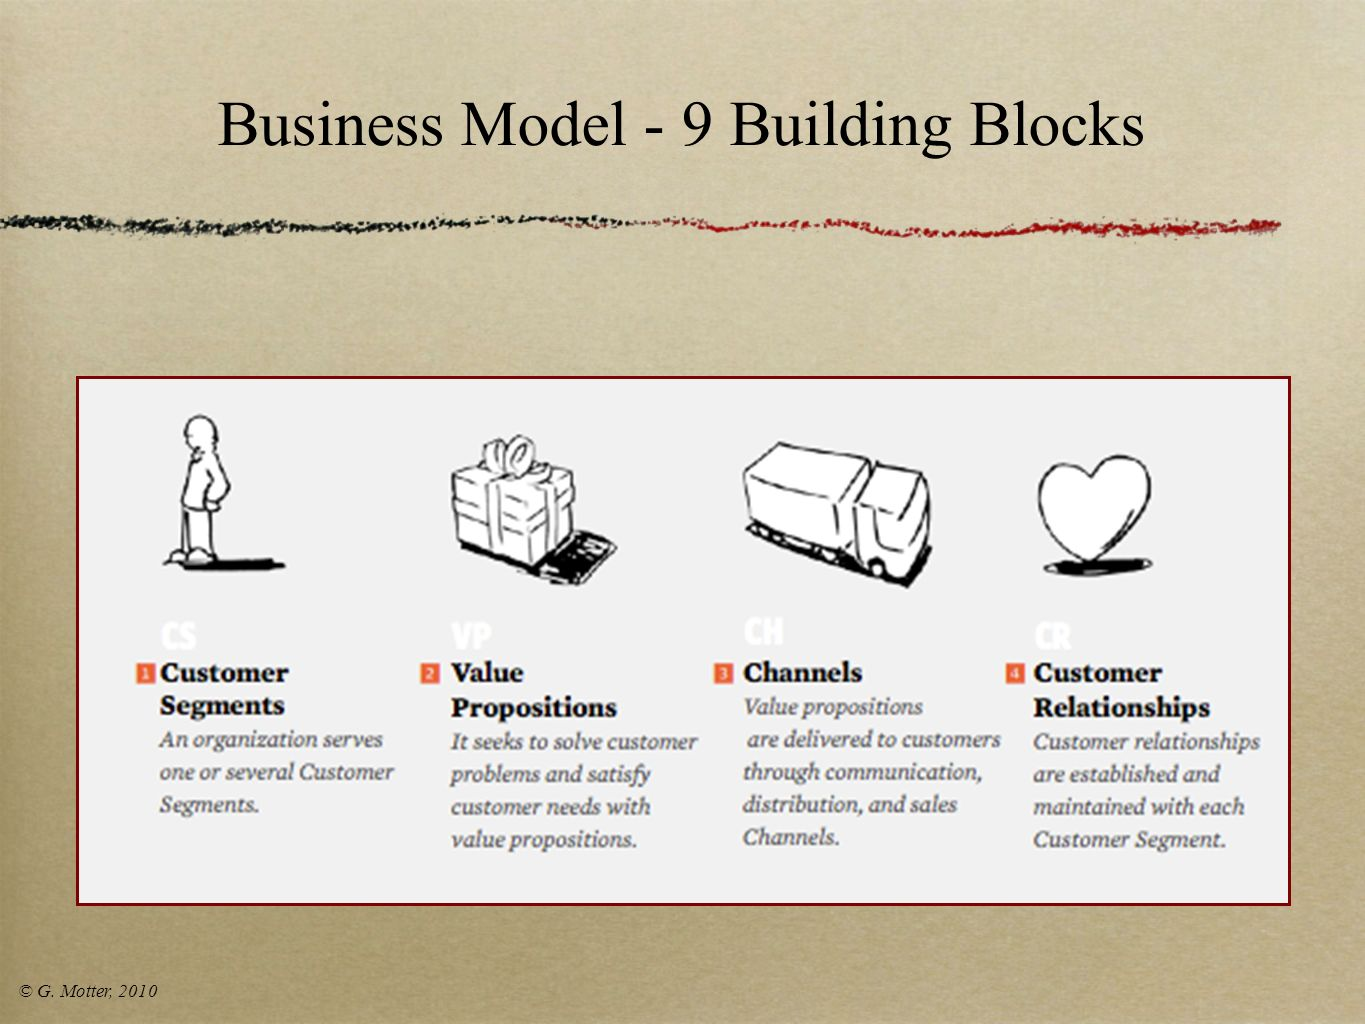 Business Model - 9 Building Blocks